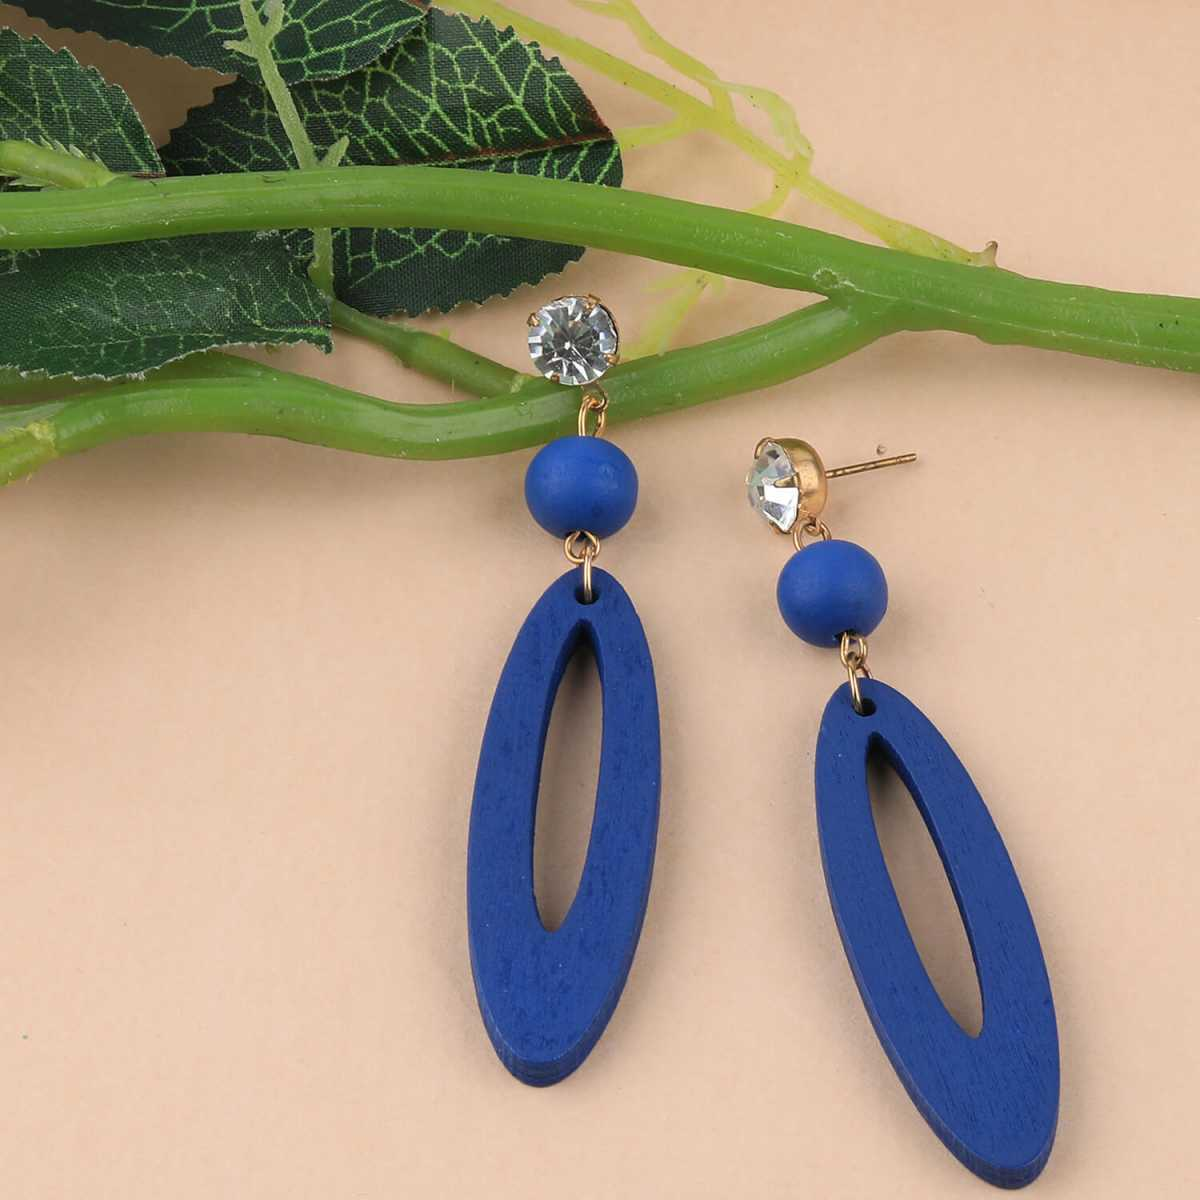 SILVER SHINE fashion Earring Antique Blue Wooden Dangler Earrings Perfect and Different Look for women girl.